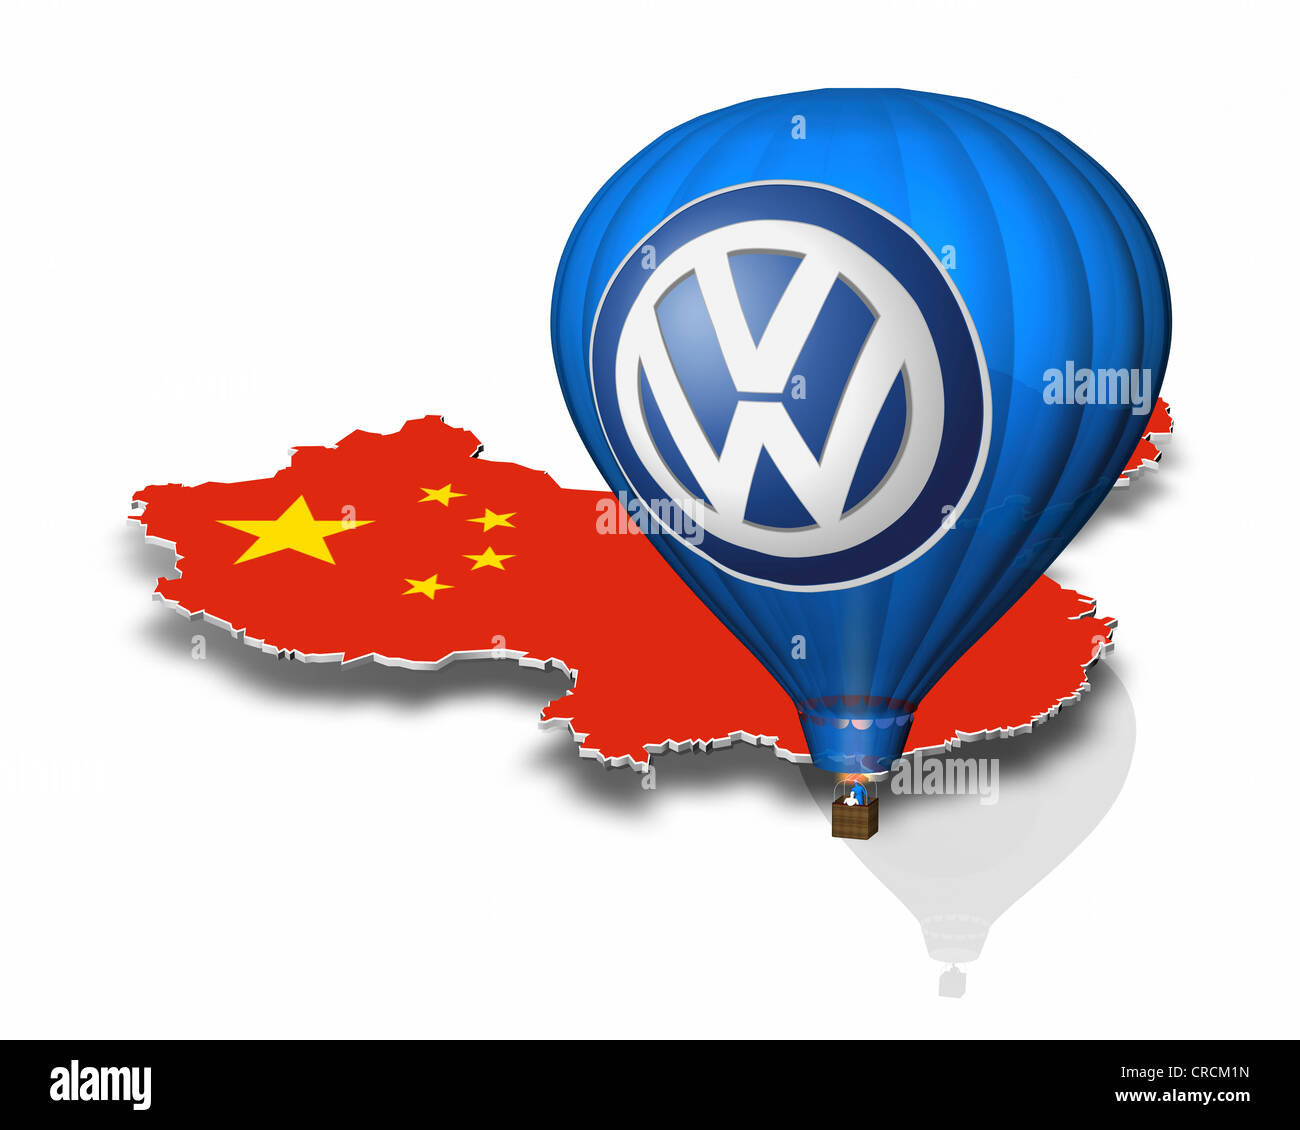 Outline of China, hot-air balloon, Volkswagen logo - Stock Image